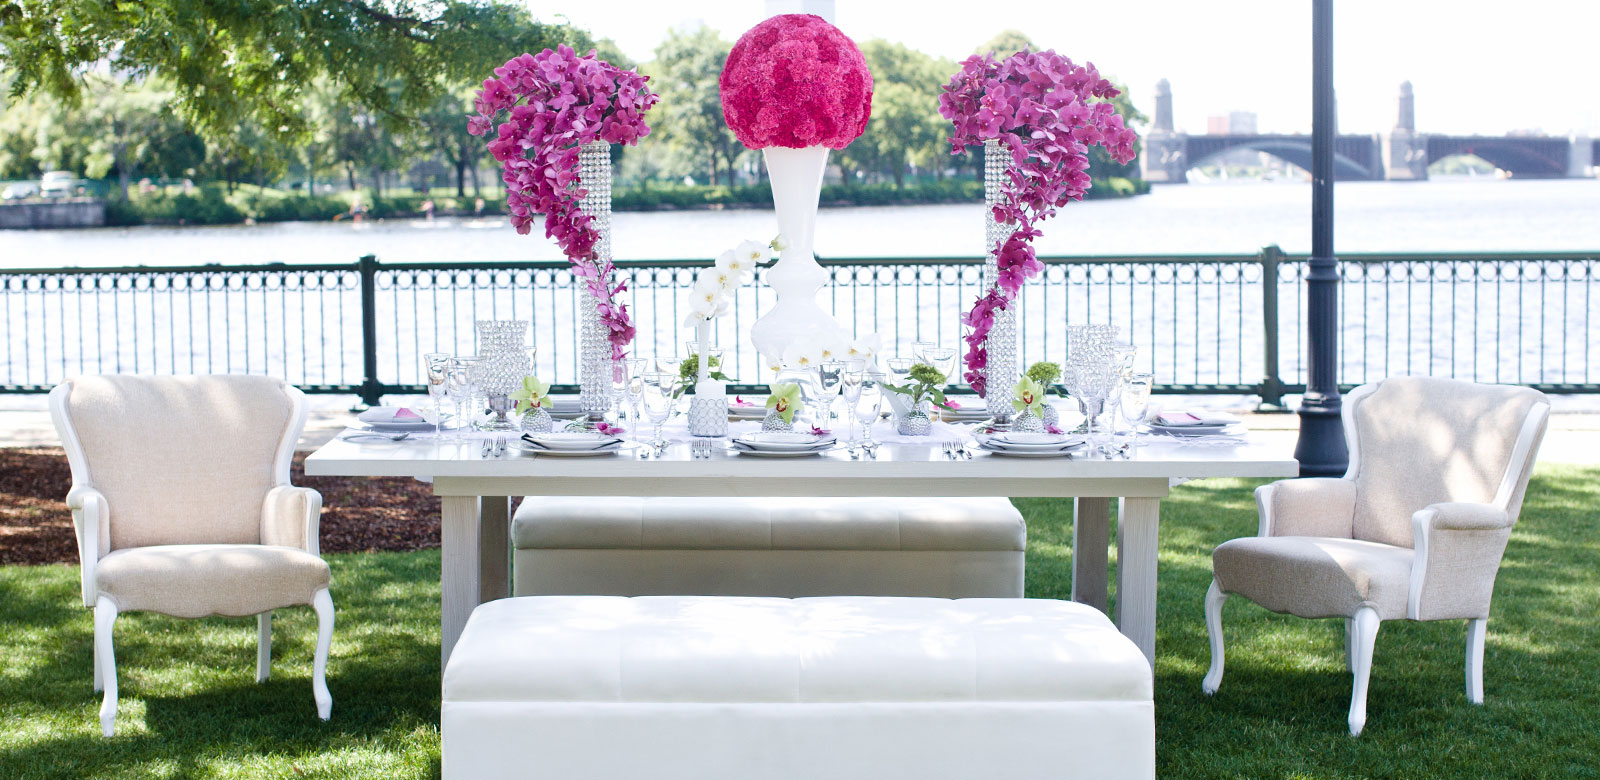 Table with Magenta Centerpiece